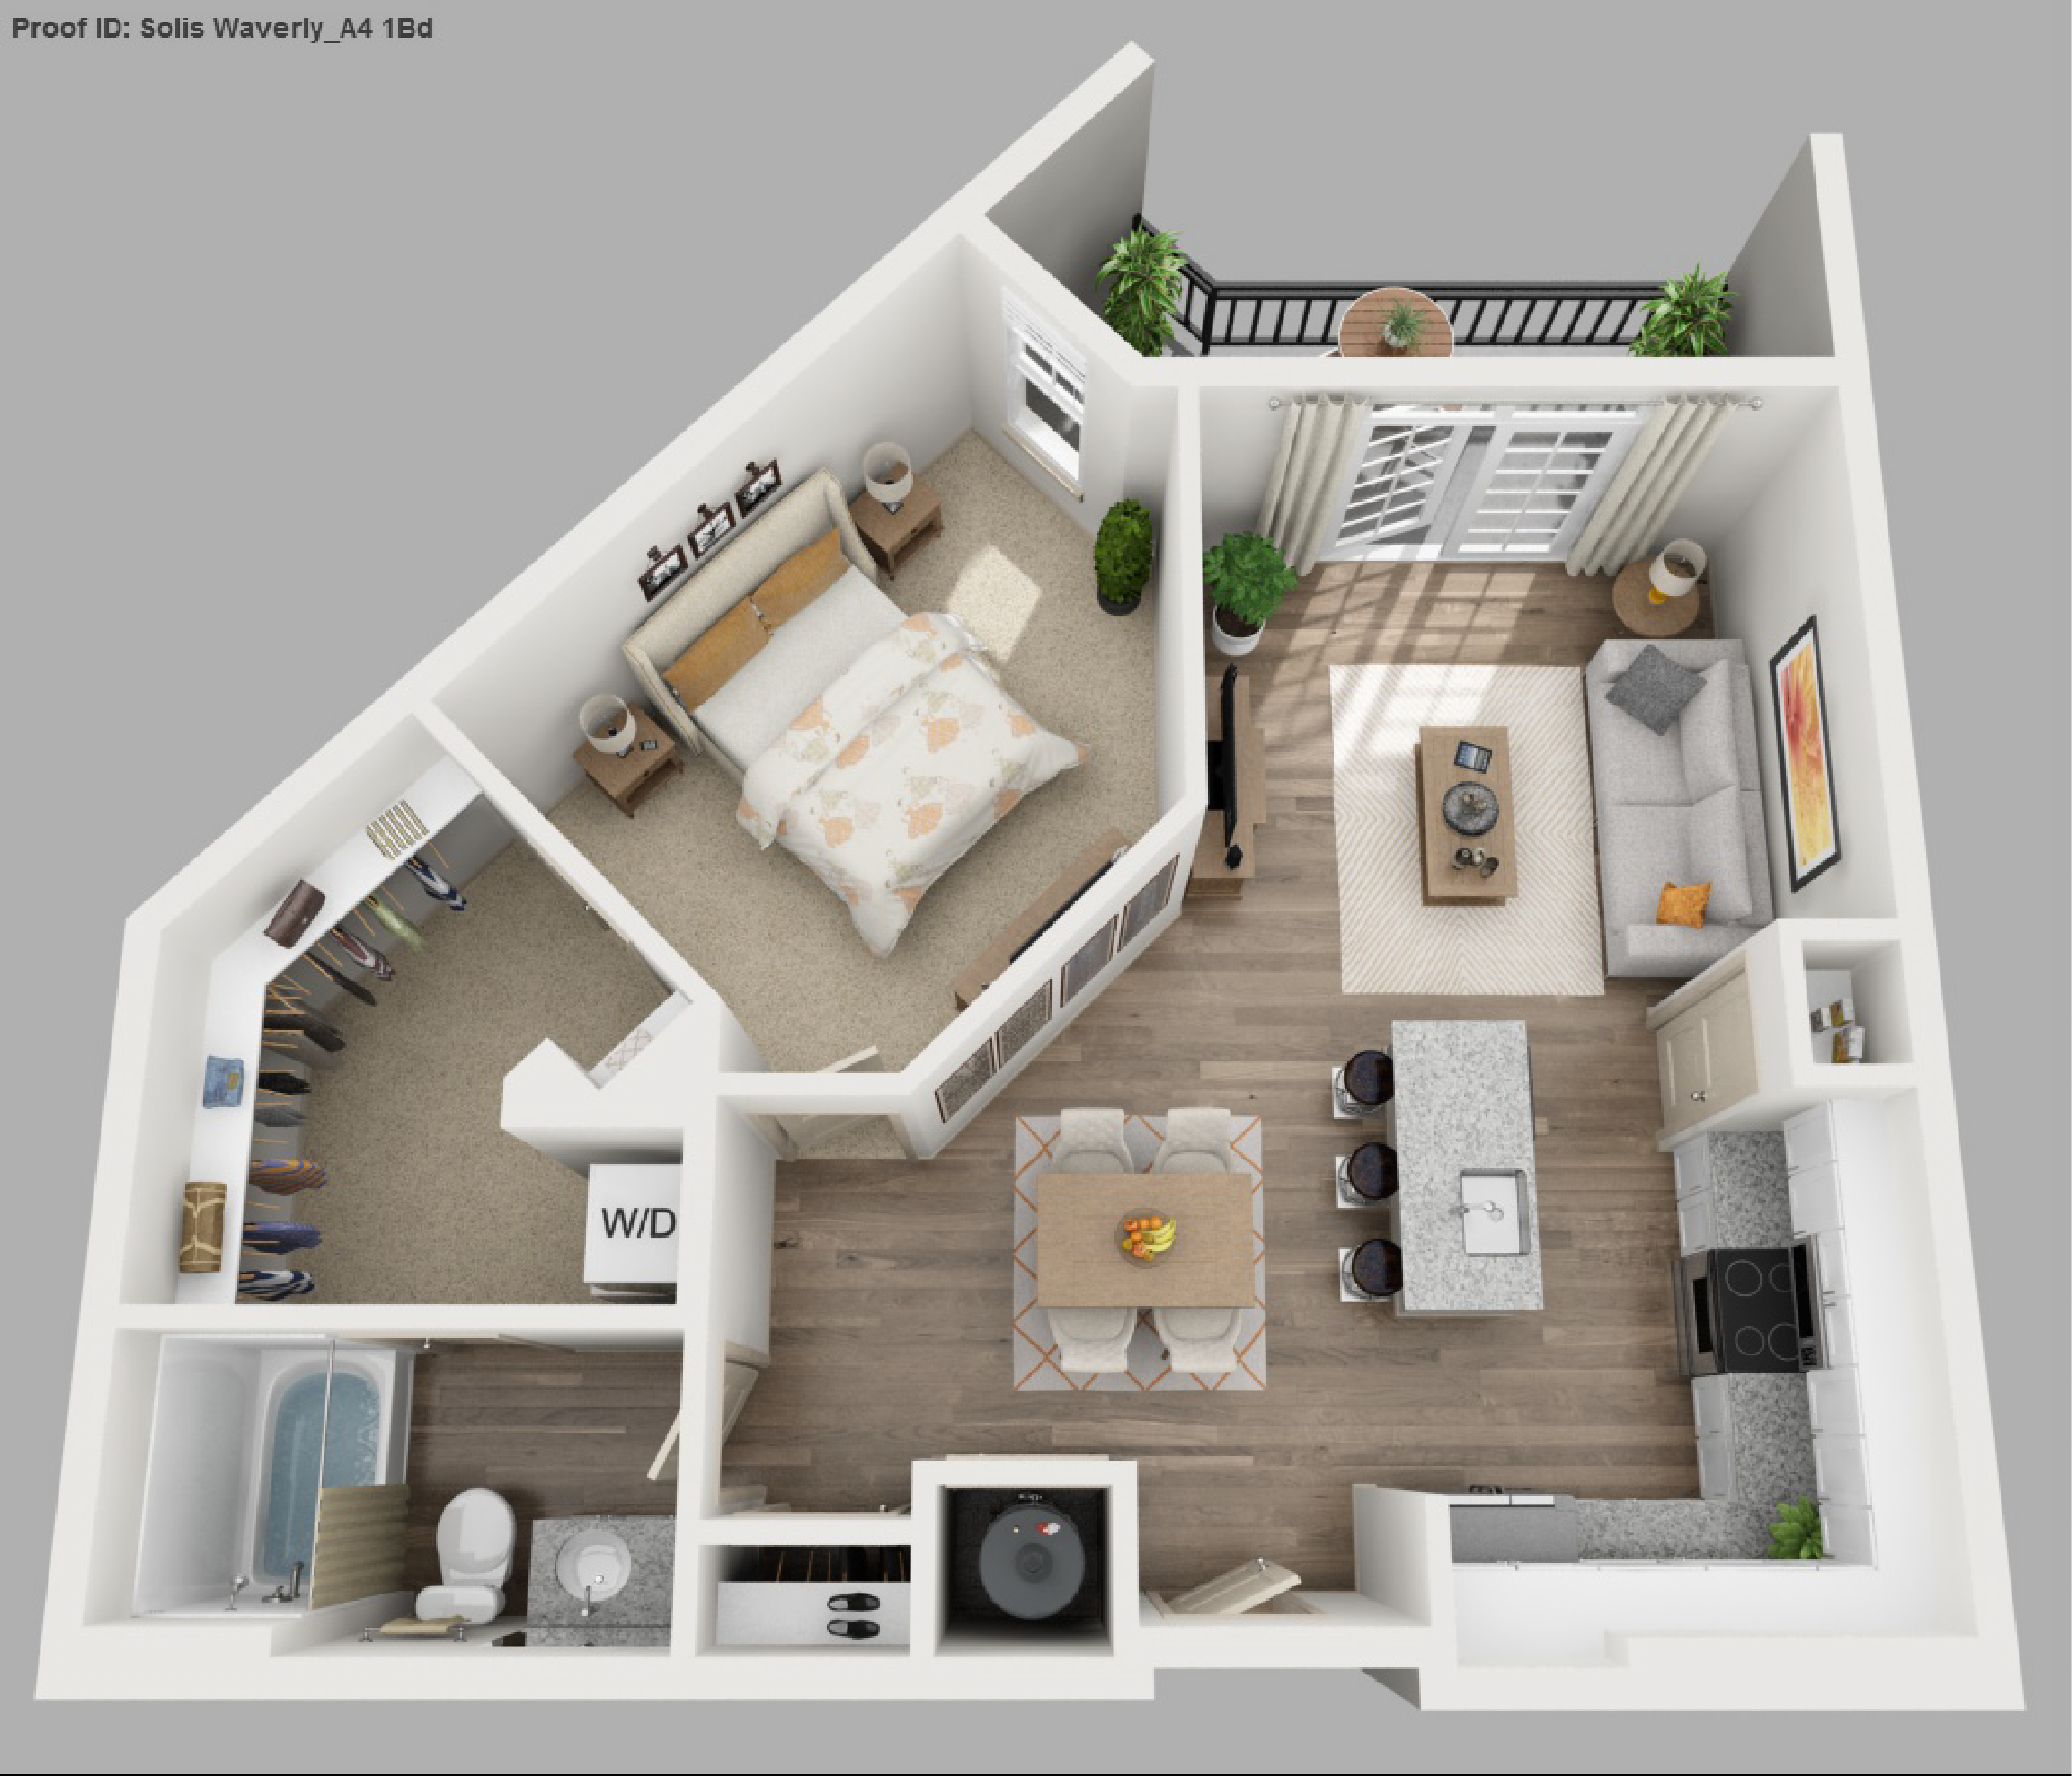 Solis apartments floorplans waverly - One room apartment design plan ...